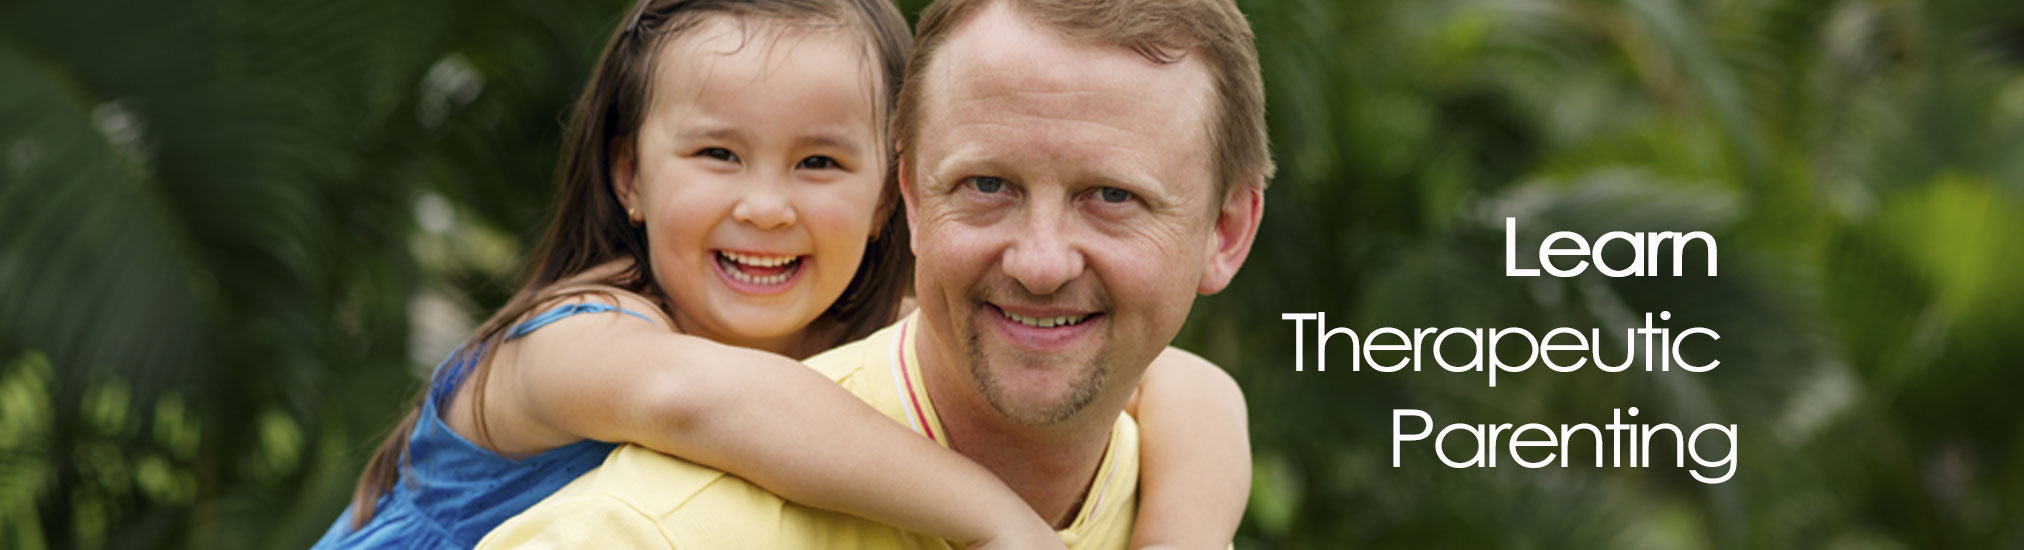 Learn Therapeutic Parenting